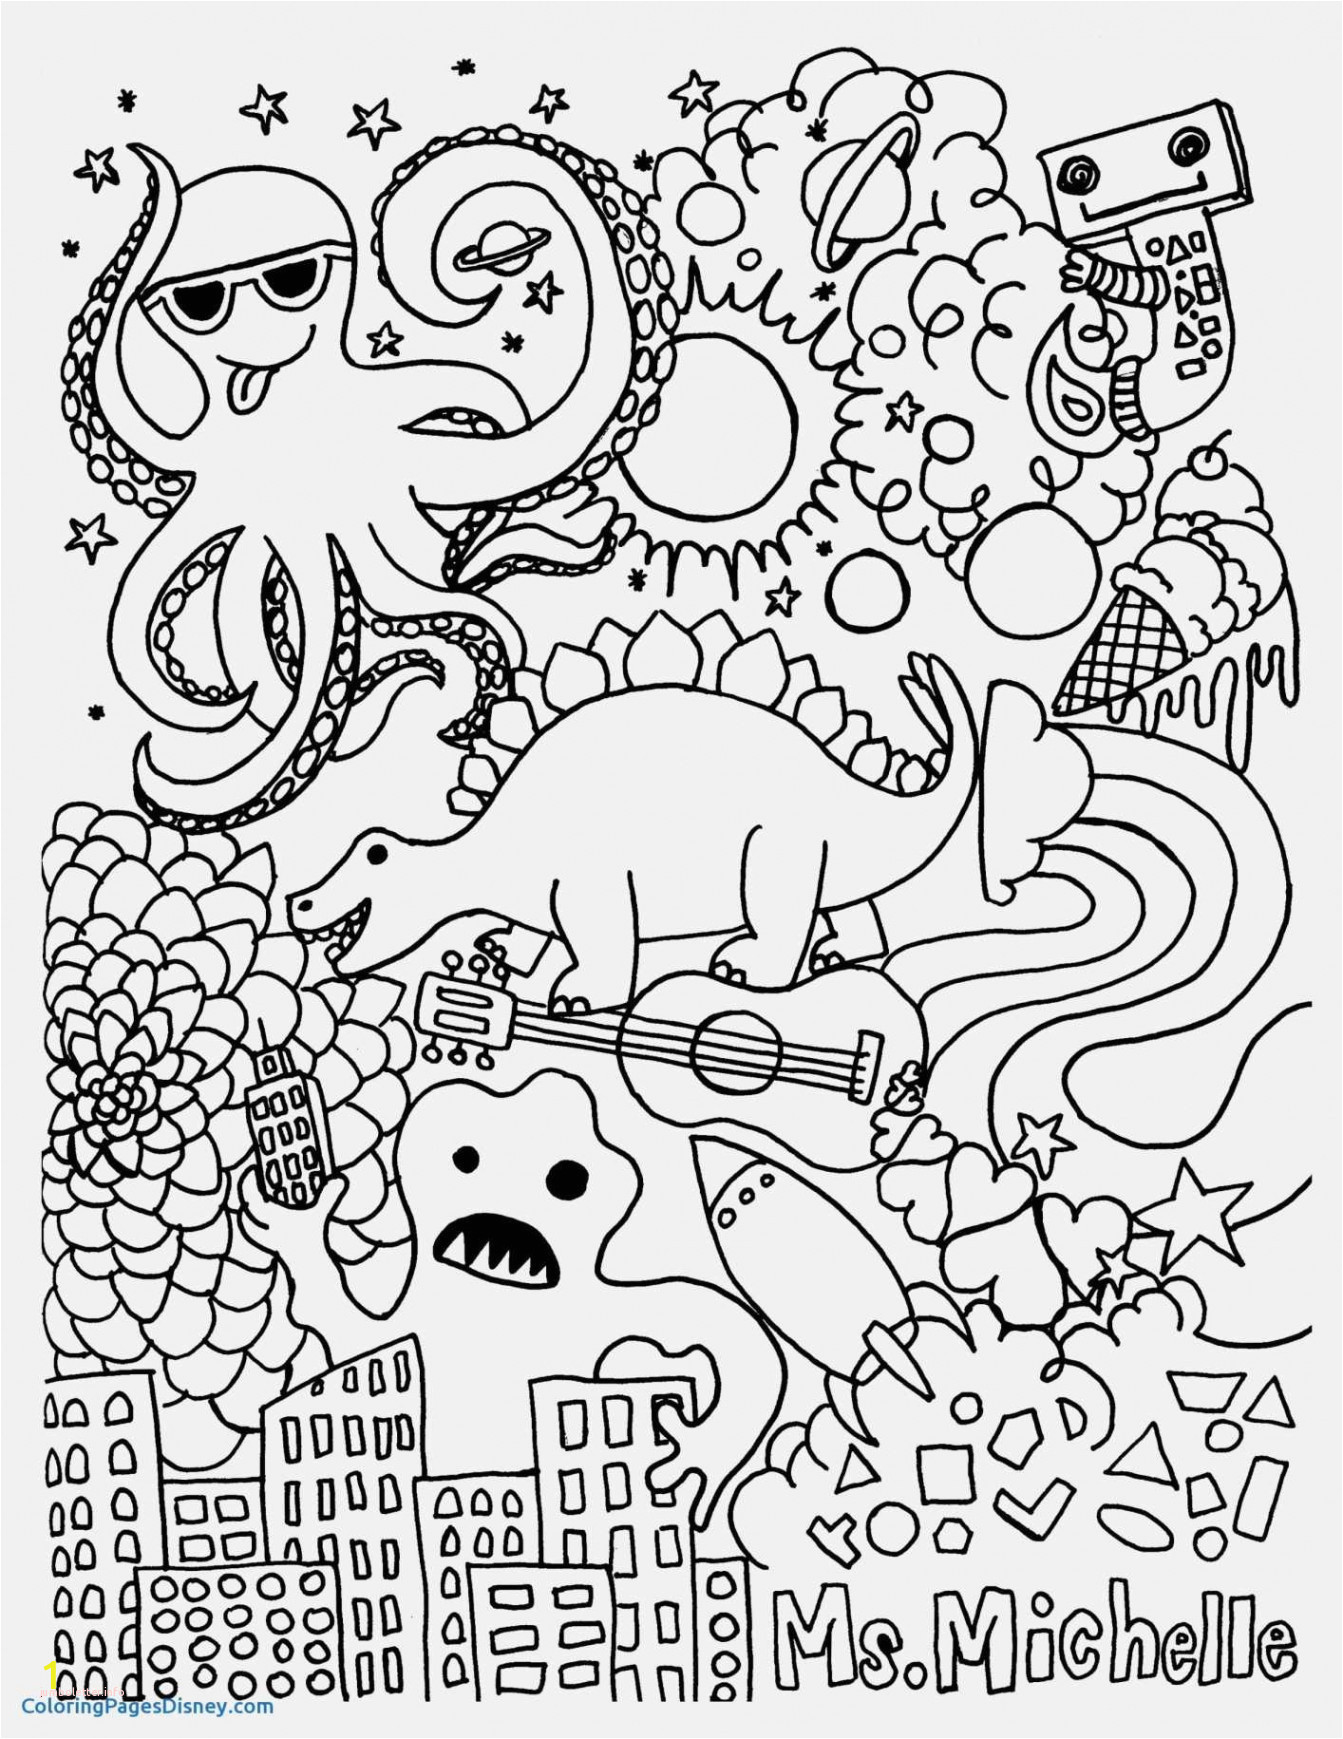 Thanksgiving Basket Coloring Pages Best Coloring Incredible Pages that You Can Print for Free